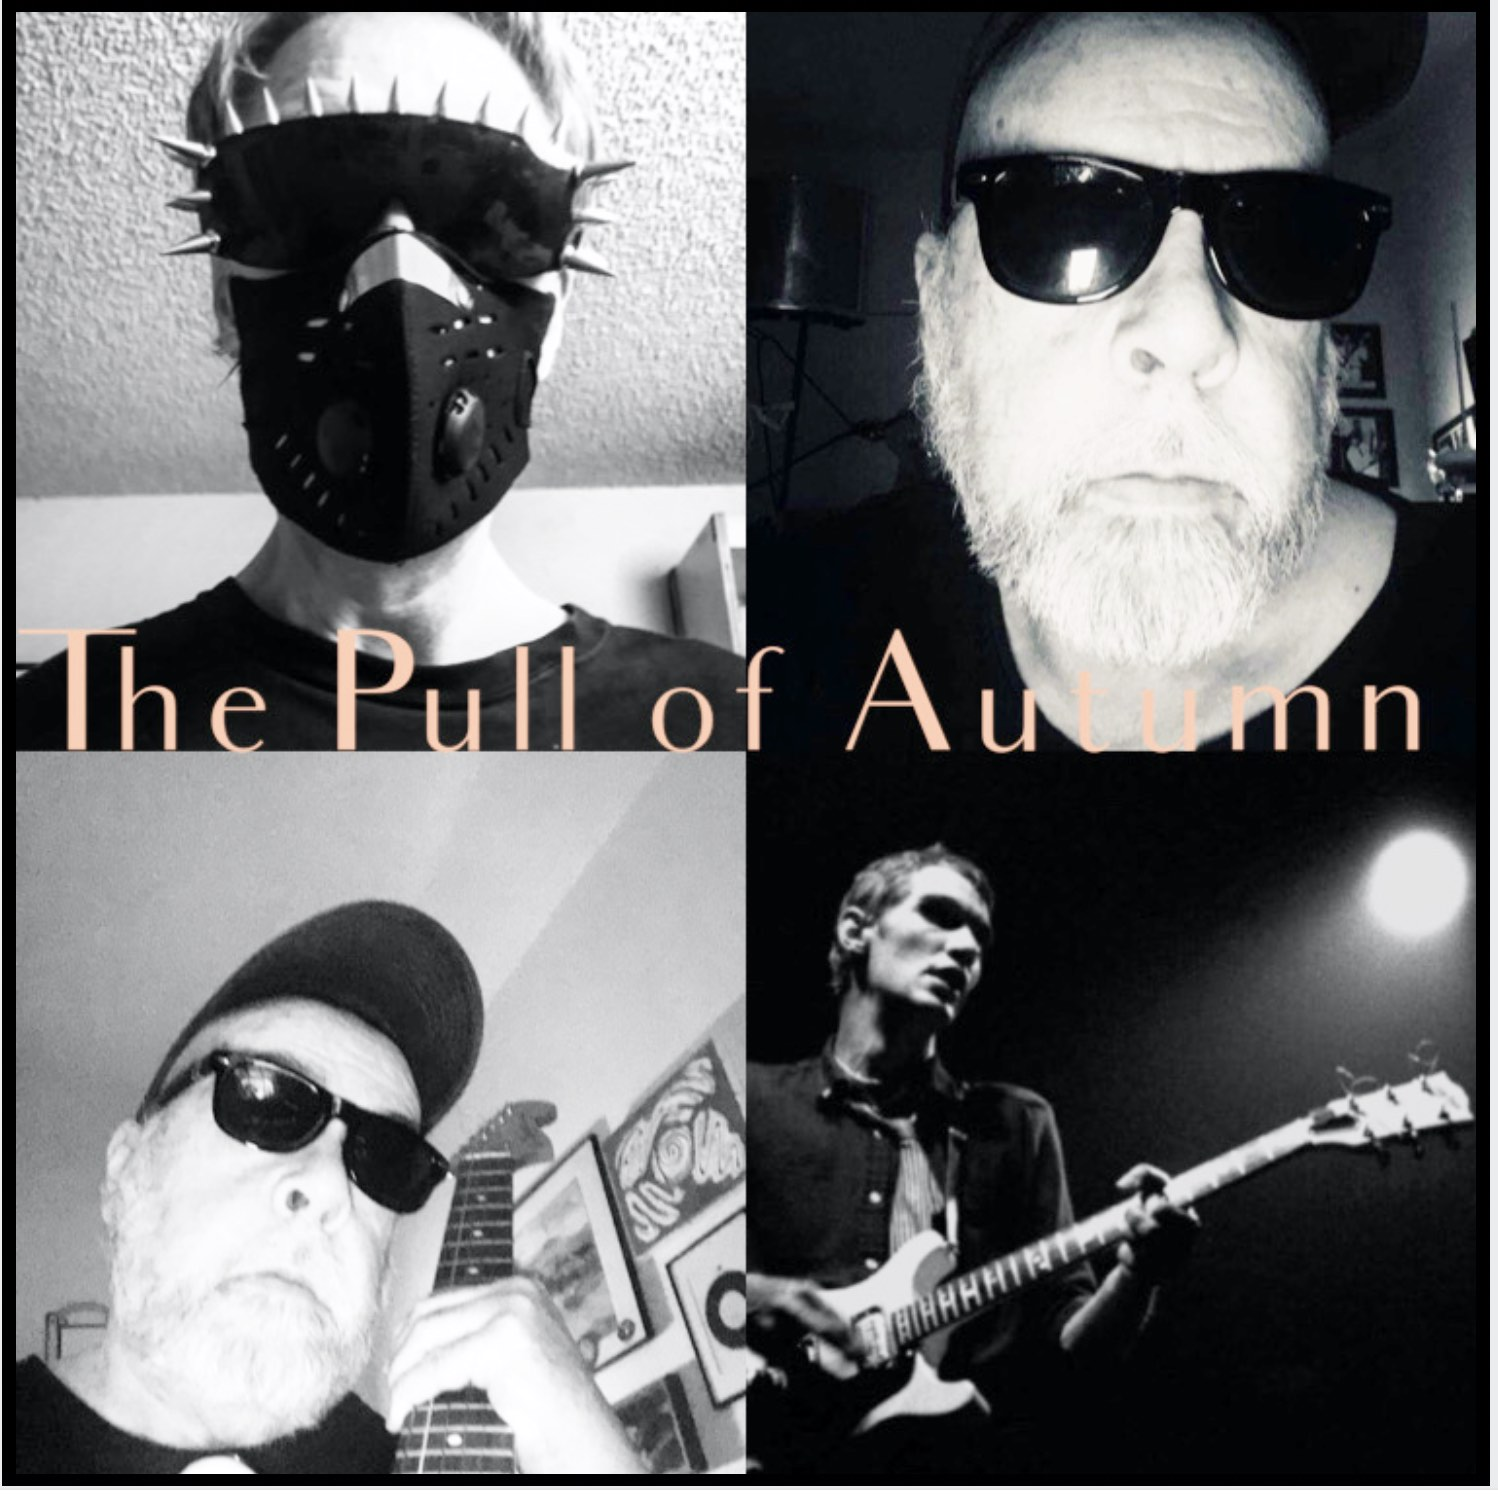 The Pull of Autumn 1 – image by Matthew Darrow